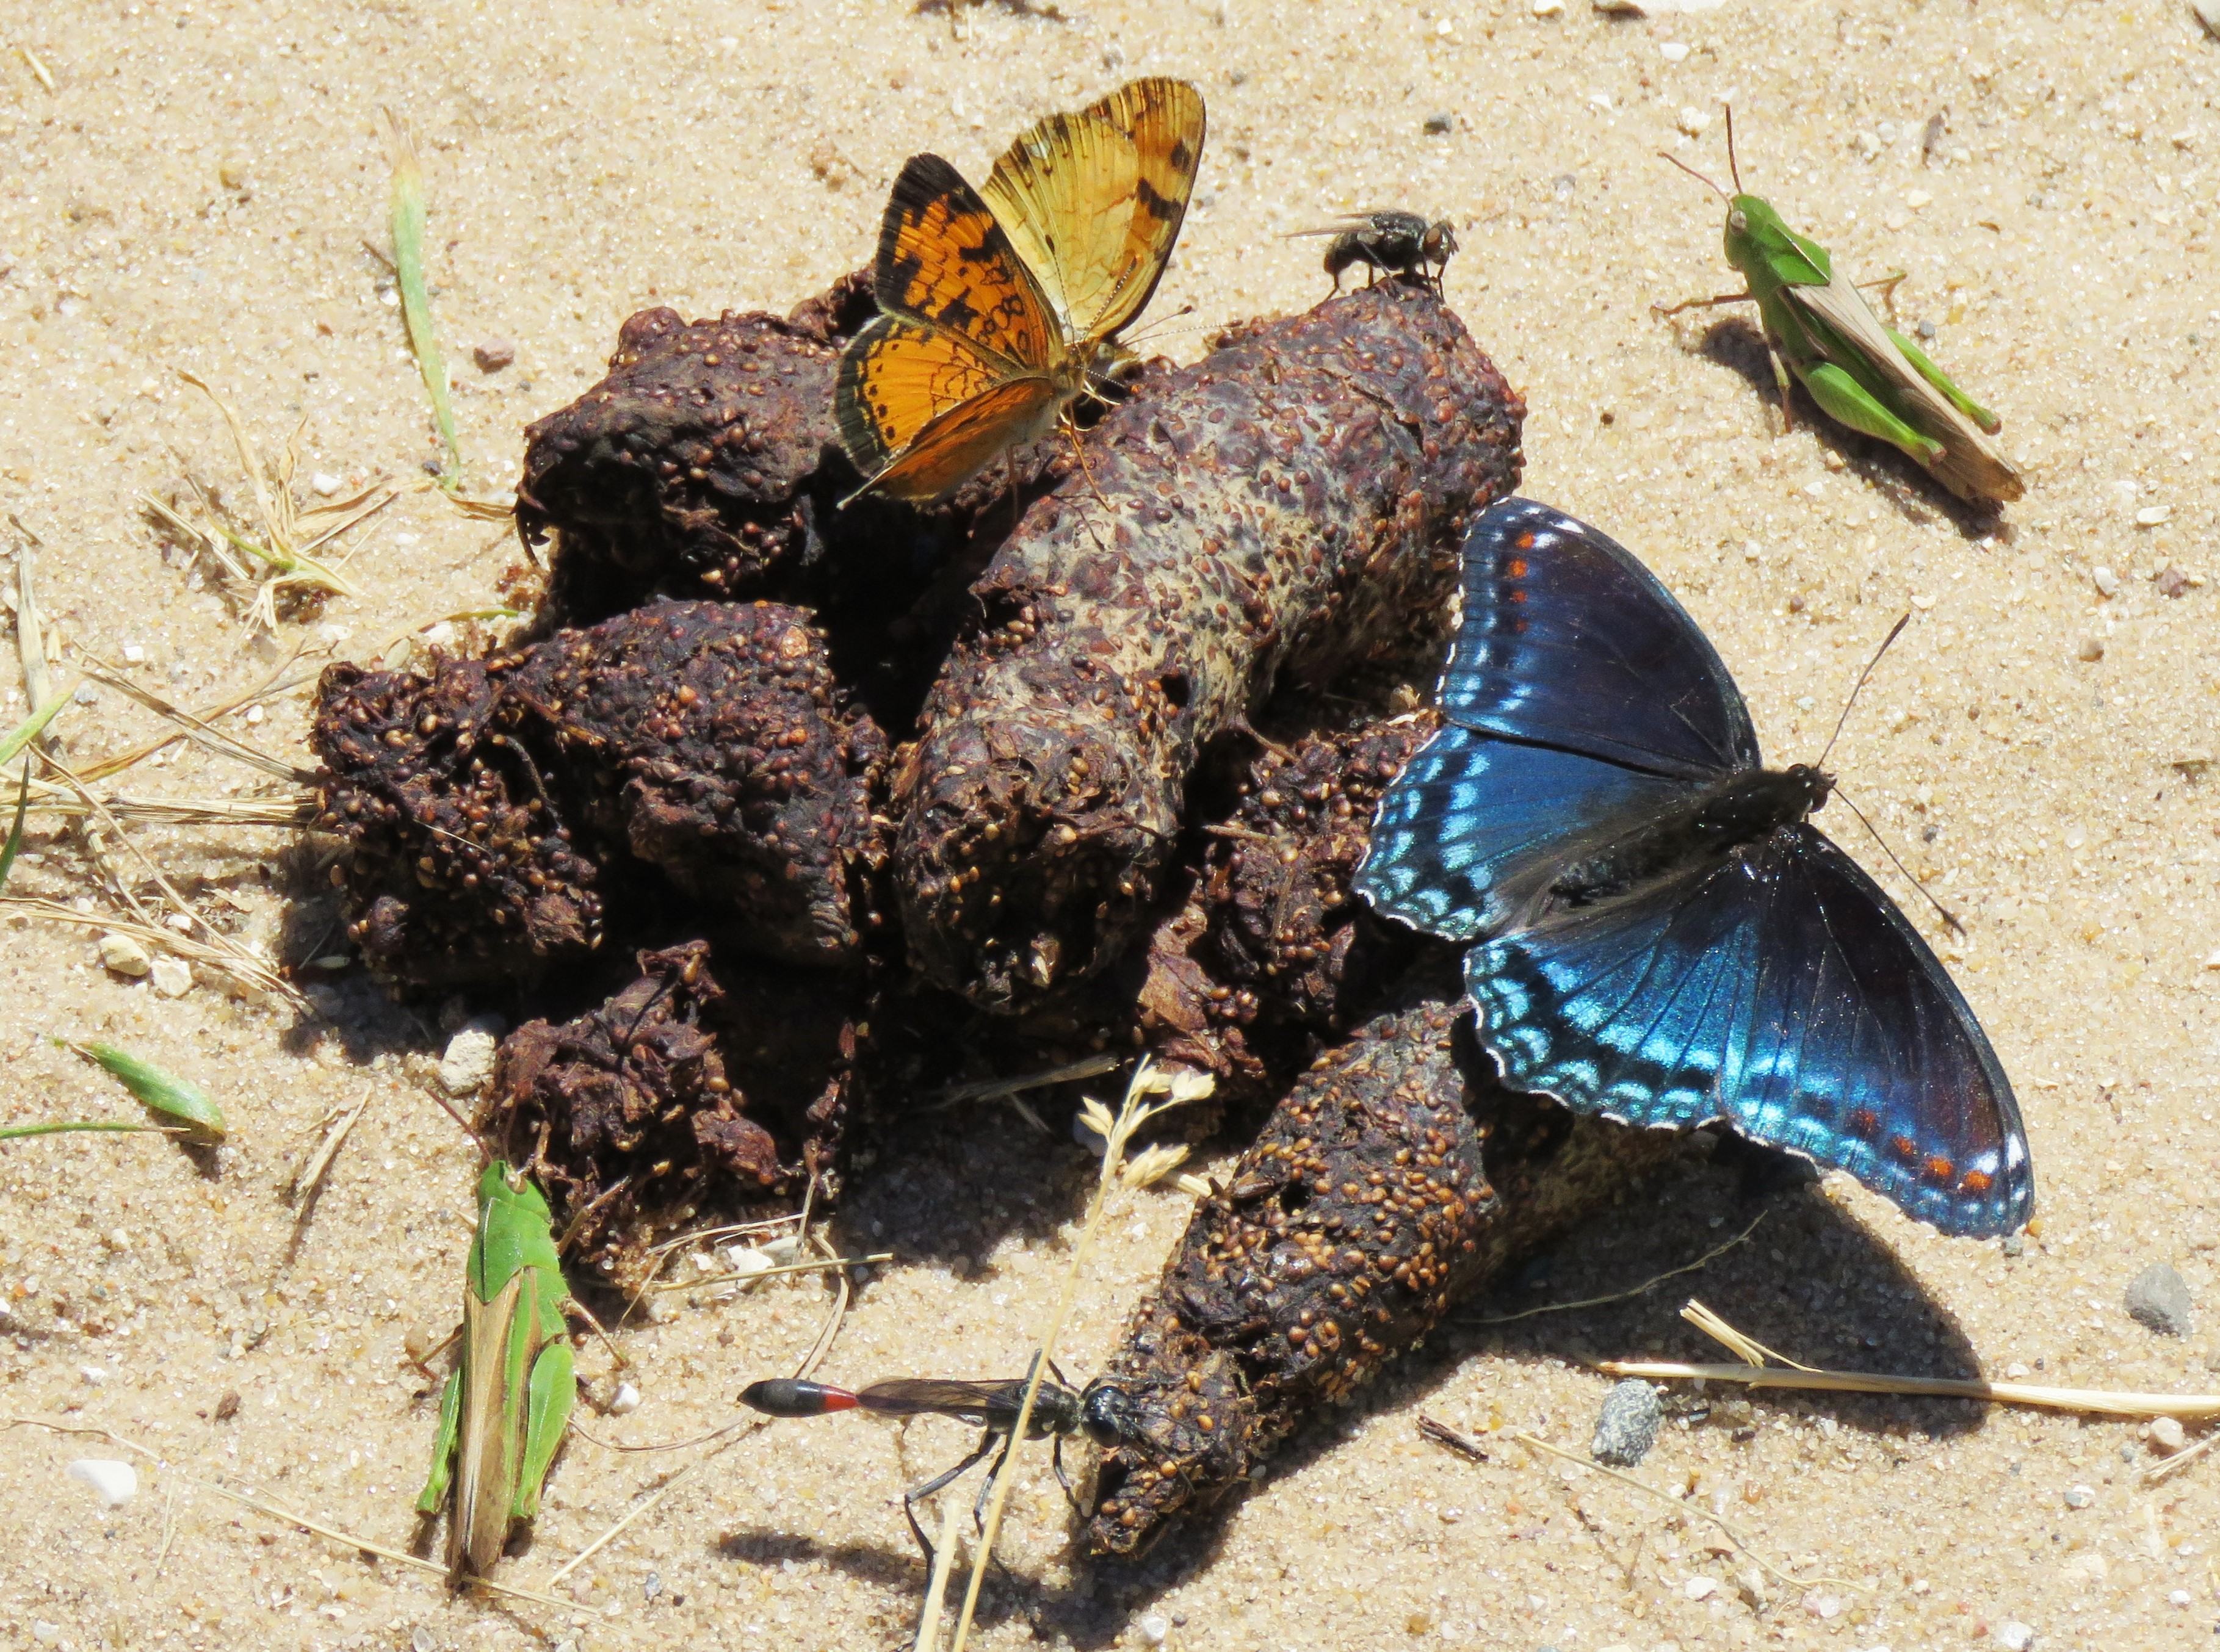 butterfly on coyote scat